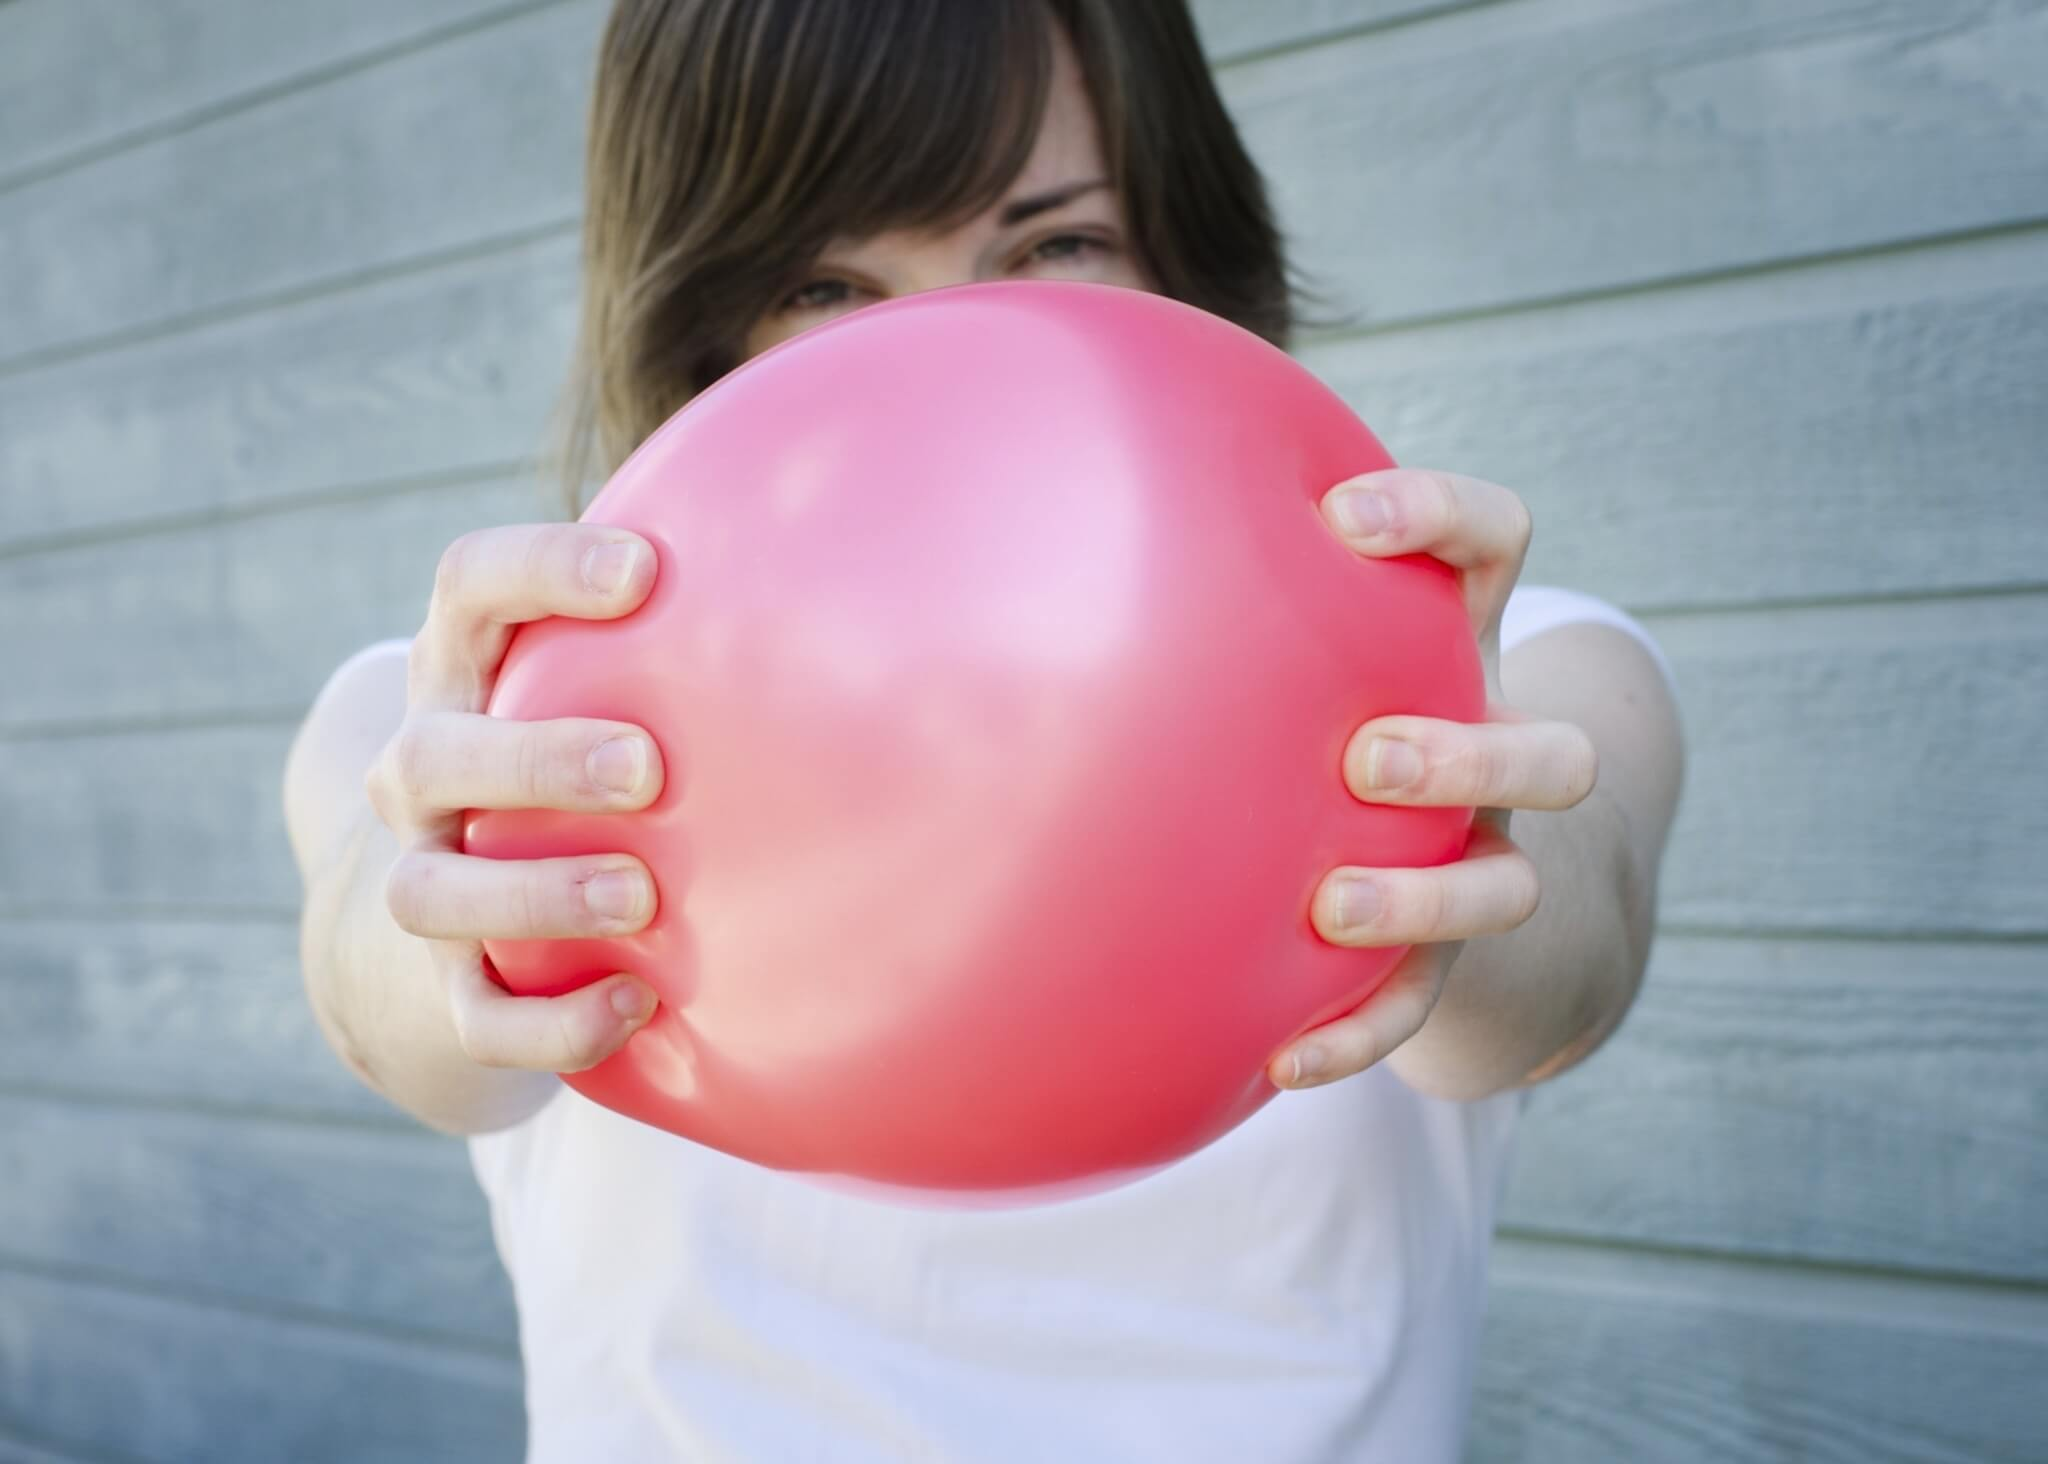 Squeezing-Red-Balloon-000021491116_Medium.jpg.jpeg